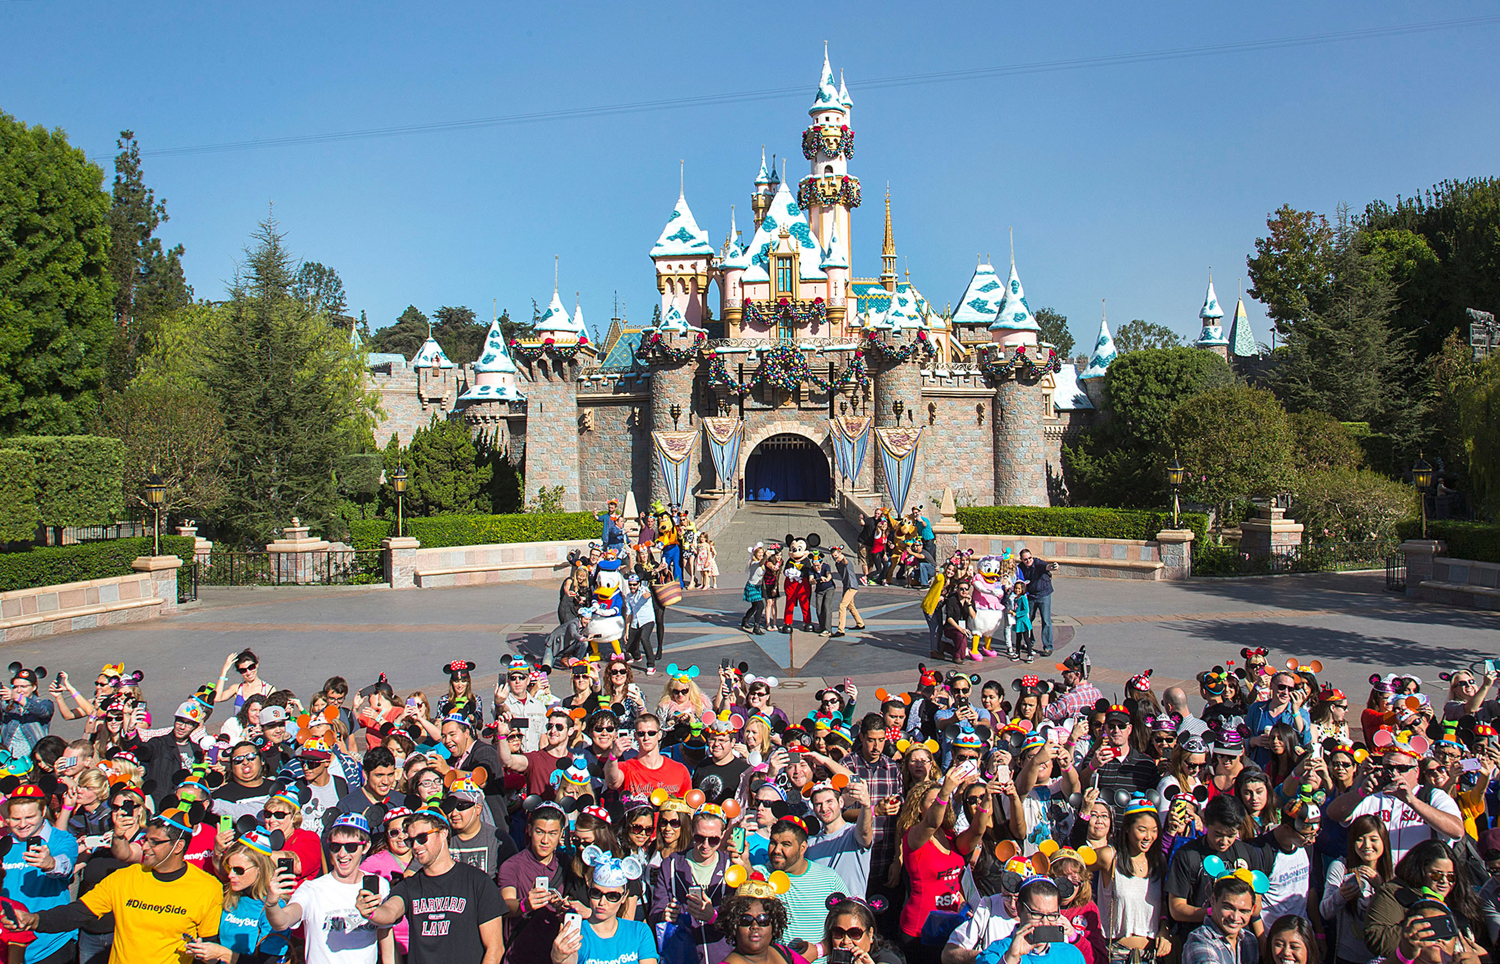 More than 1,000 fans gather for a photo at Disneyland in Anaheim, Calif.